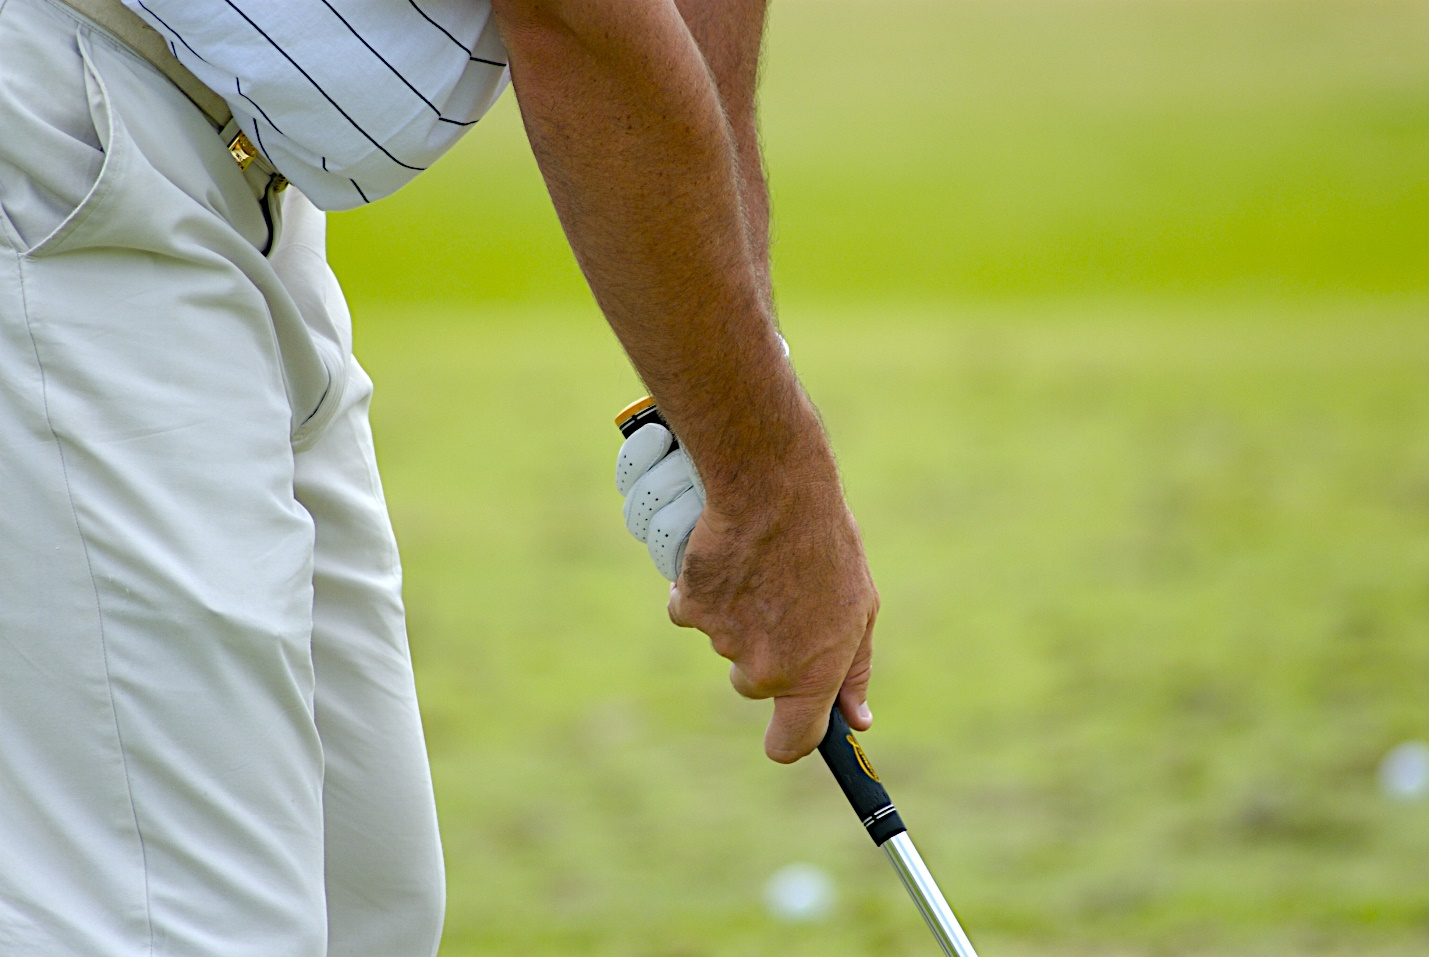 The overlapping grip in golf.